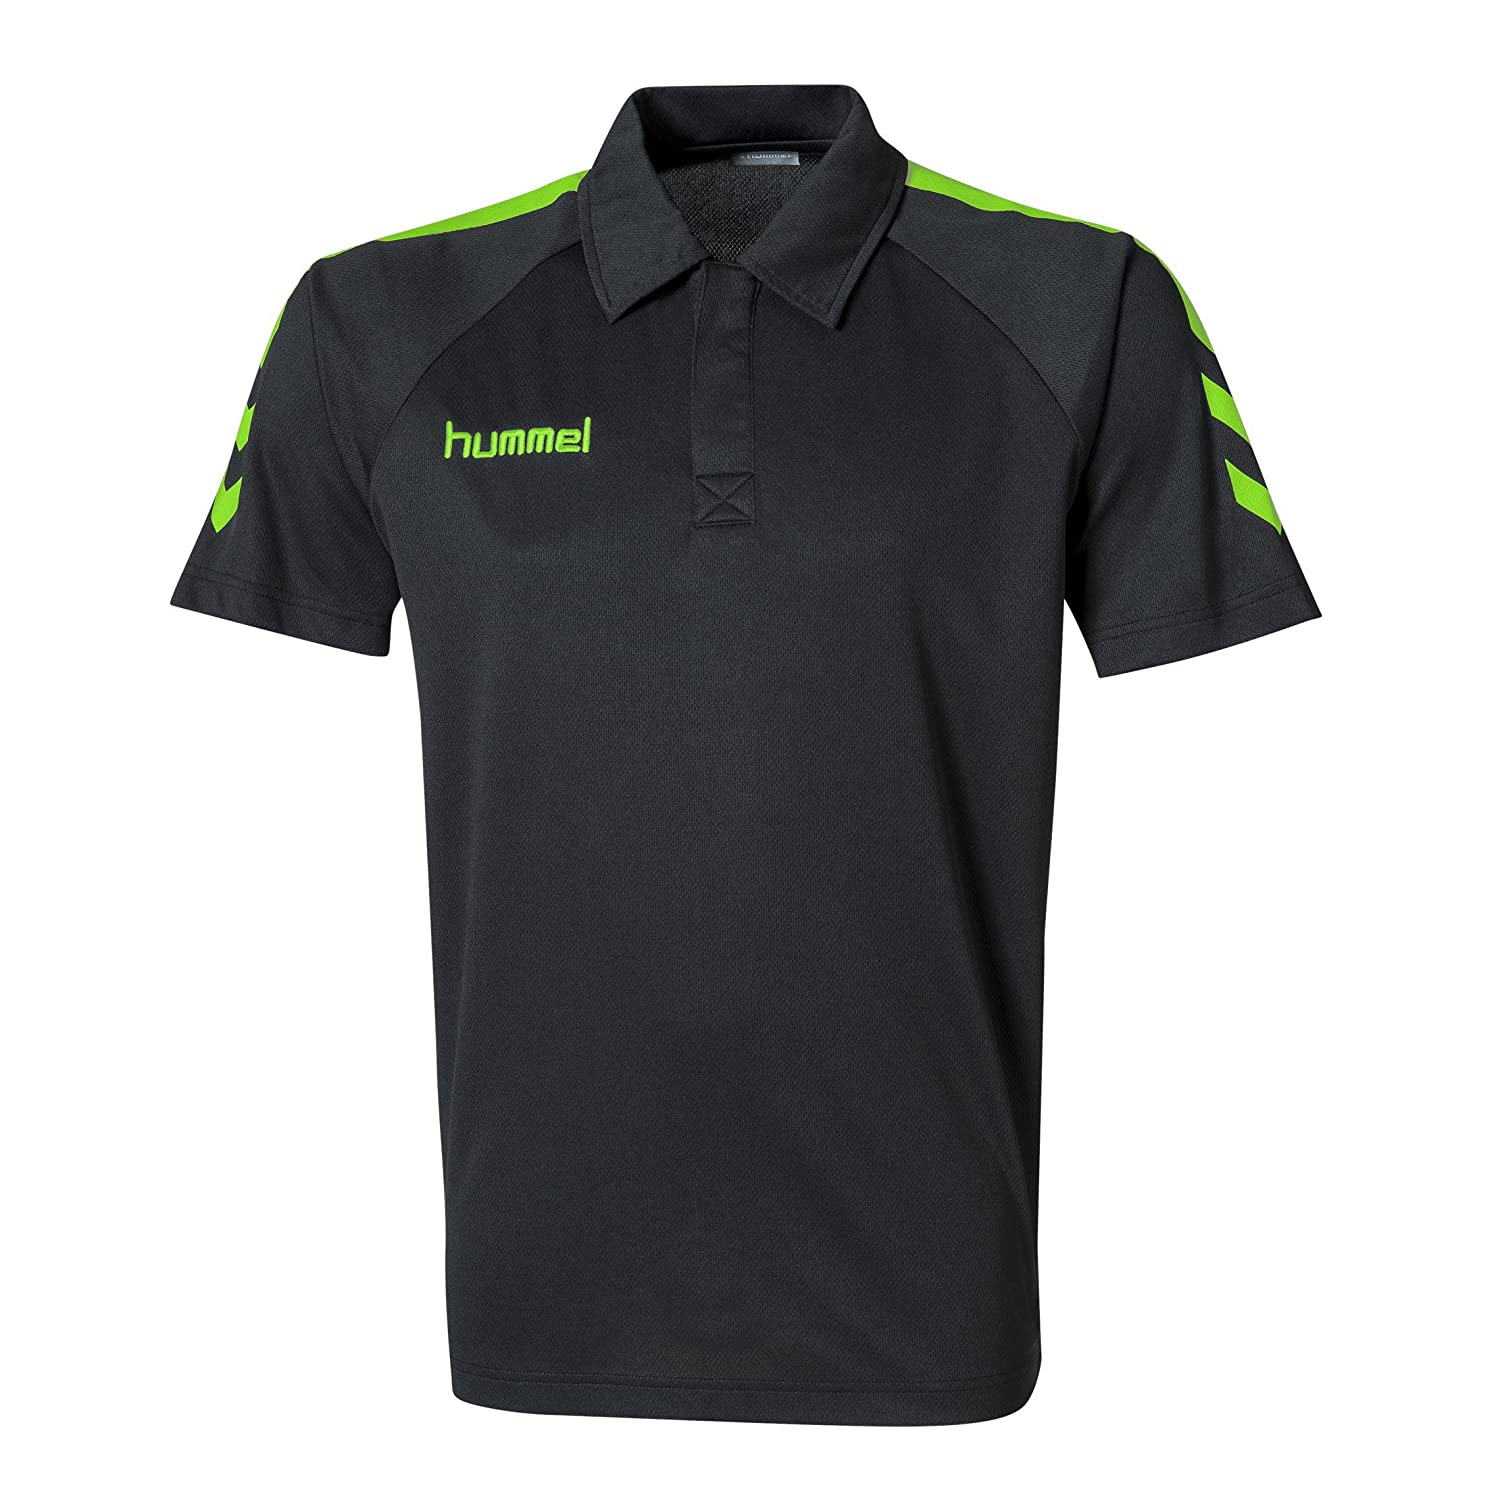 hummel Polo Core: Amazon.es: Deportes y aire libre